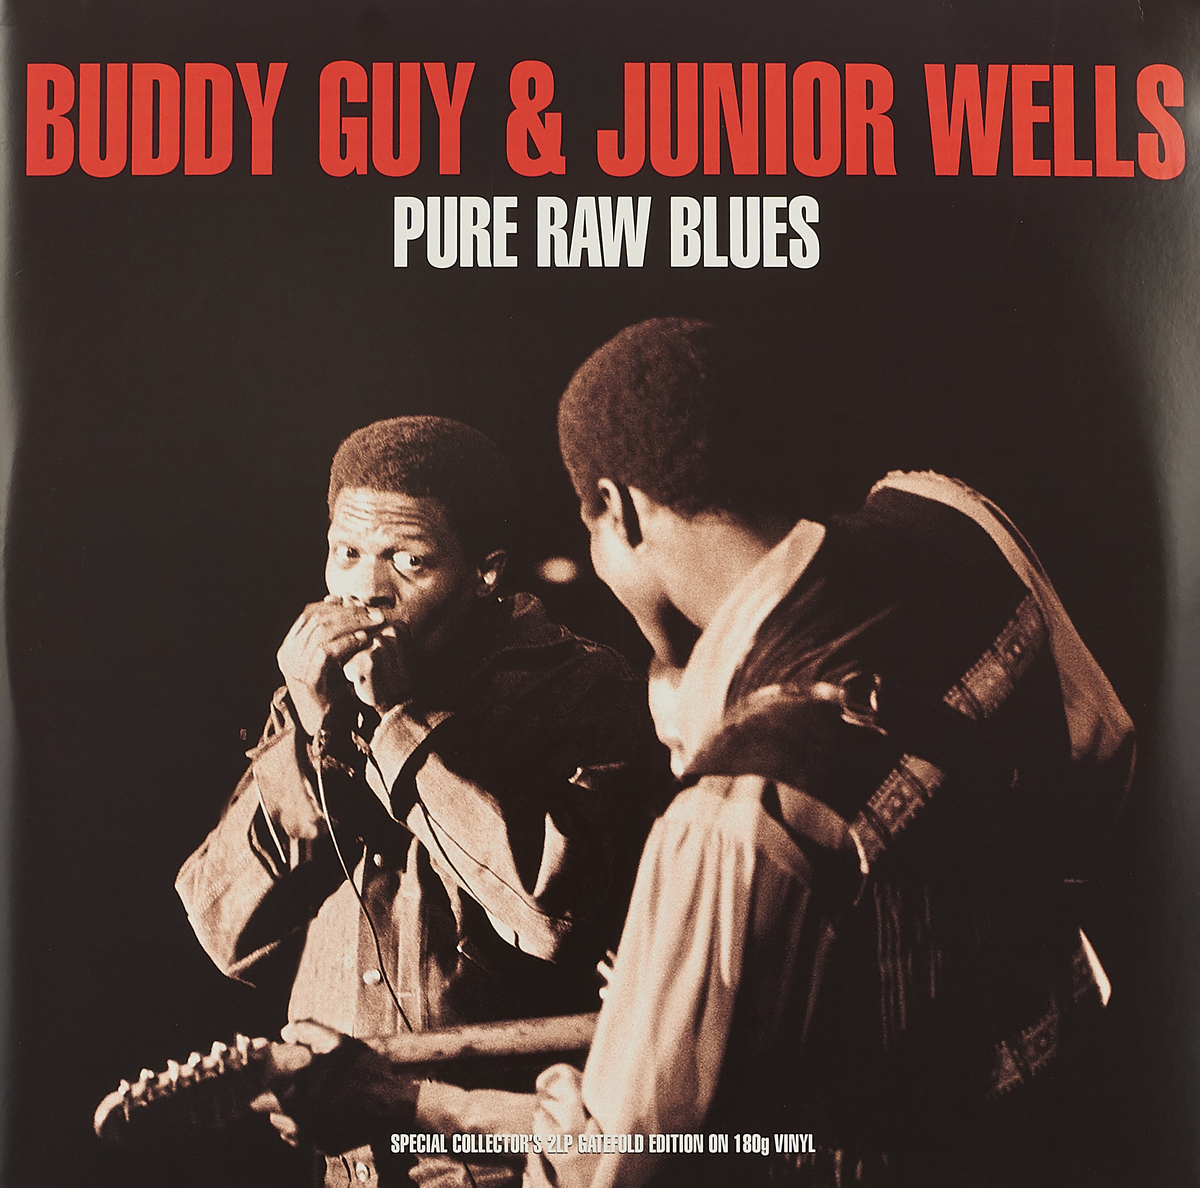 Гай Бадди,Джуниор Уэллс Guy Buddy & Junior Wells. Pure Raw Blues (2 LP) бадди гай отис раш айк тернер ли джексон шеки джейк вилли диксон buddy guy otis rush ike turner cobra 2 cd